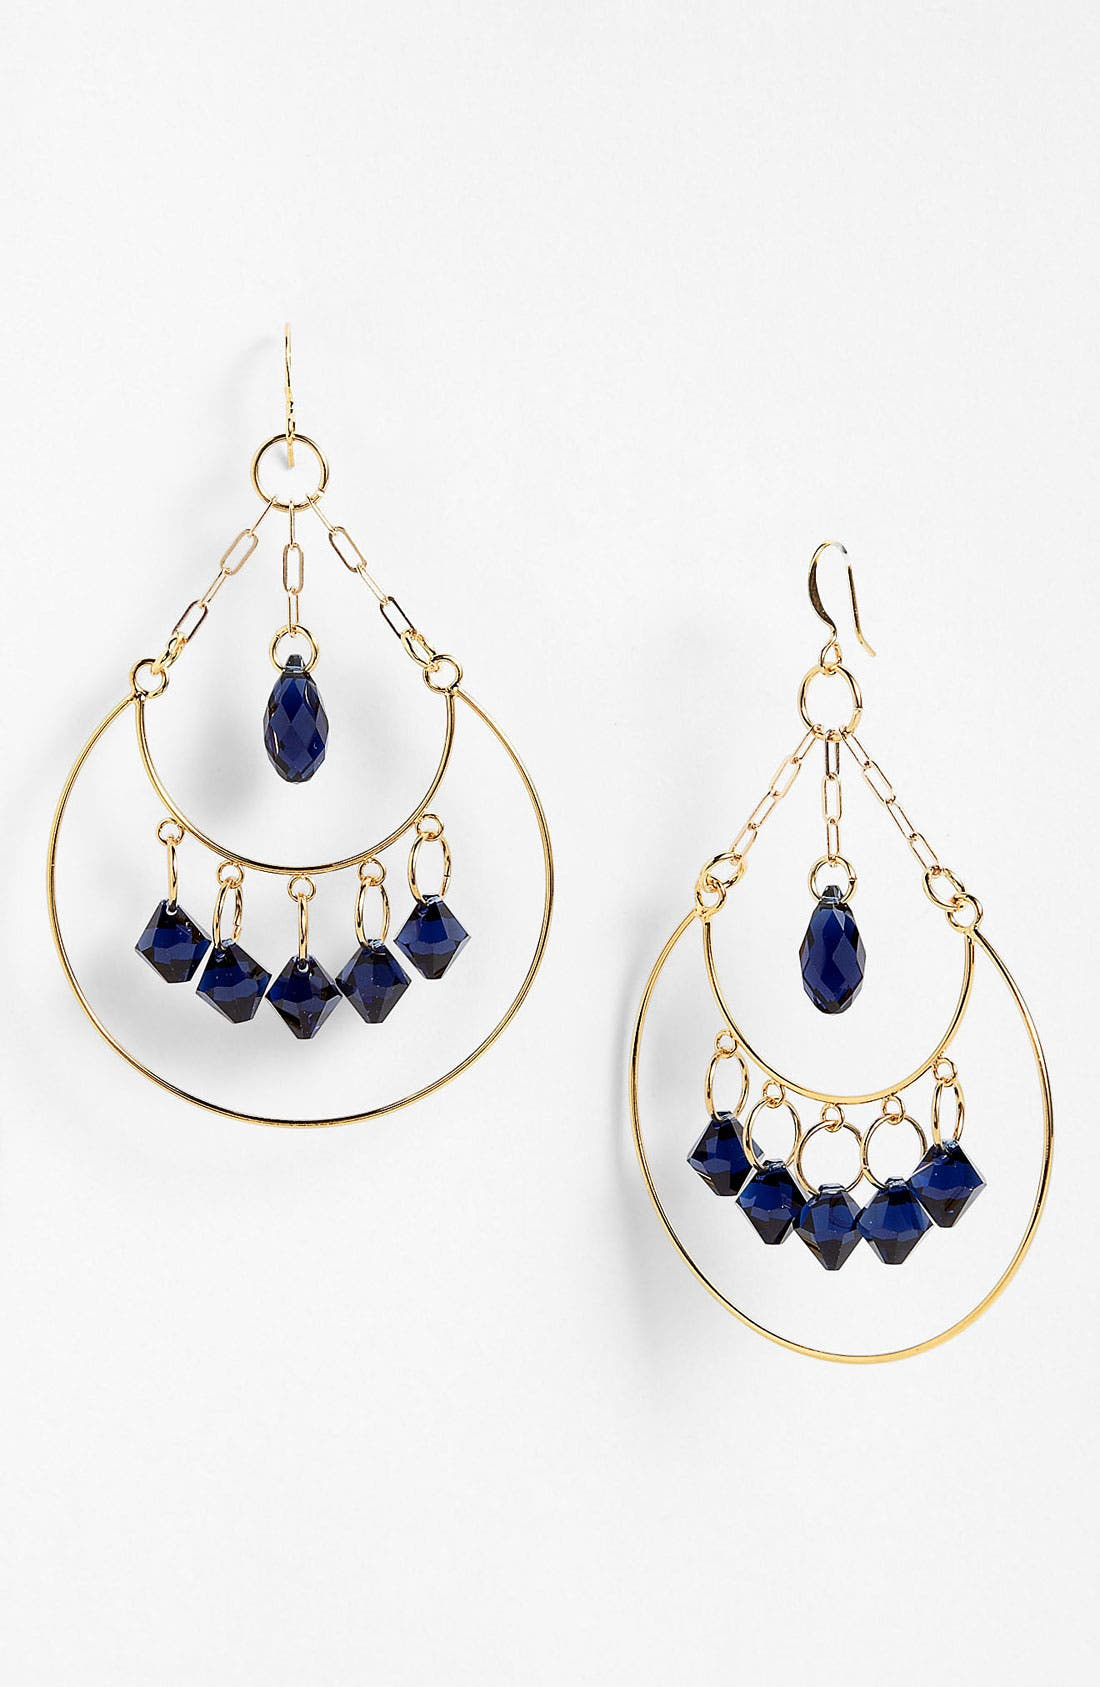 Alternate Image 1 Selected - Verdier Jewelry Indigo Crystal Chandelier Earrings